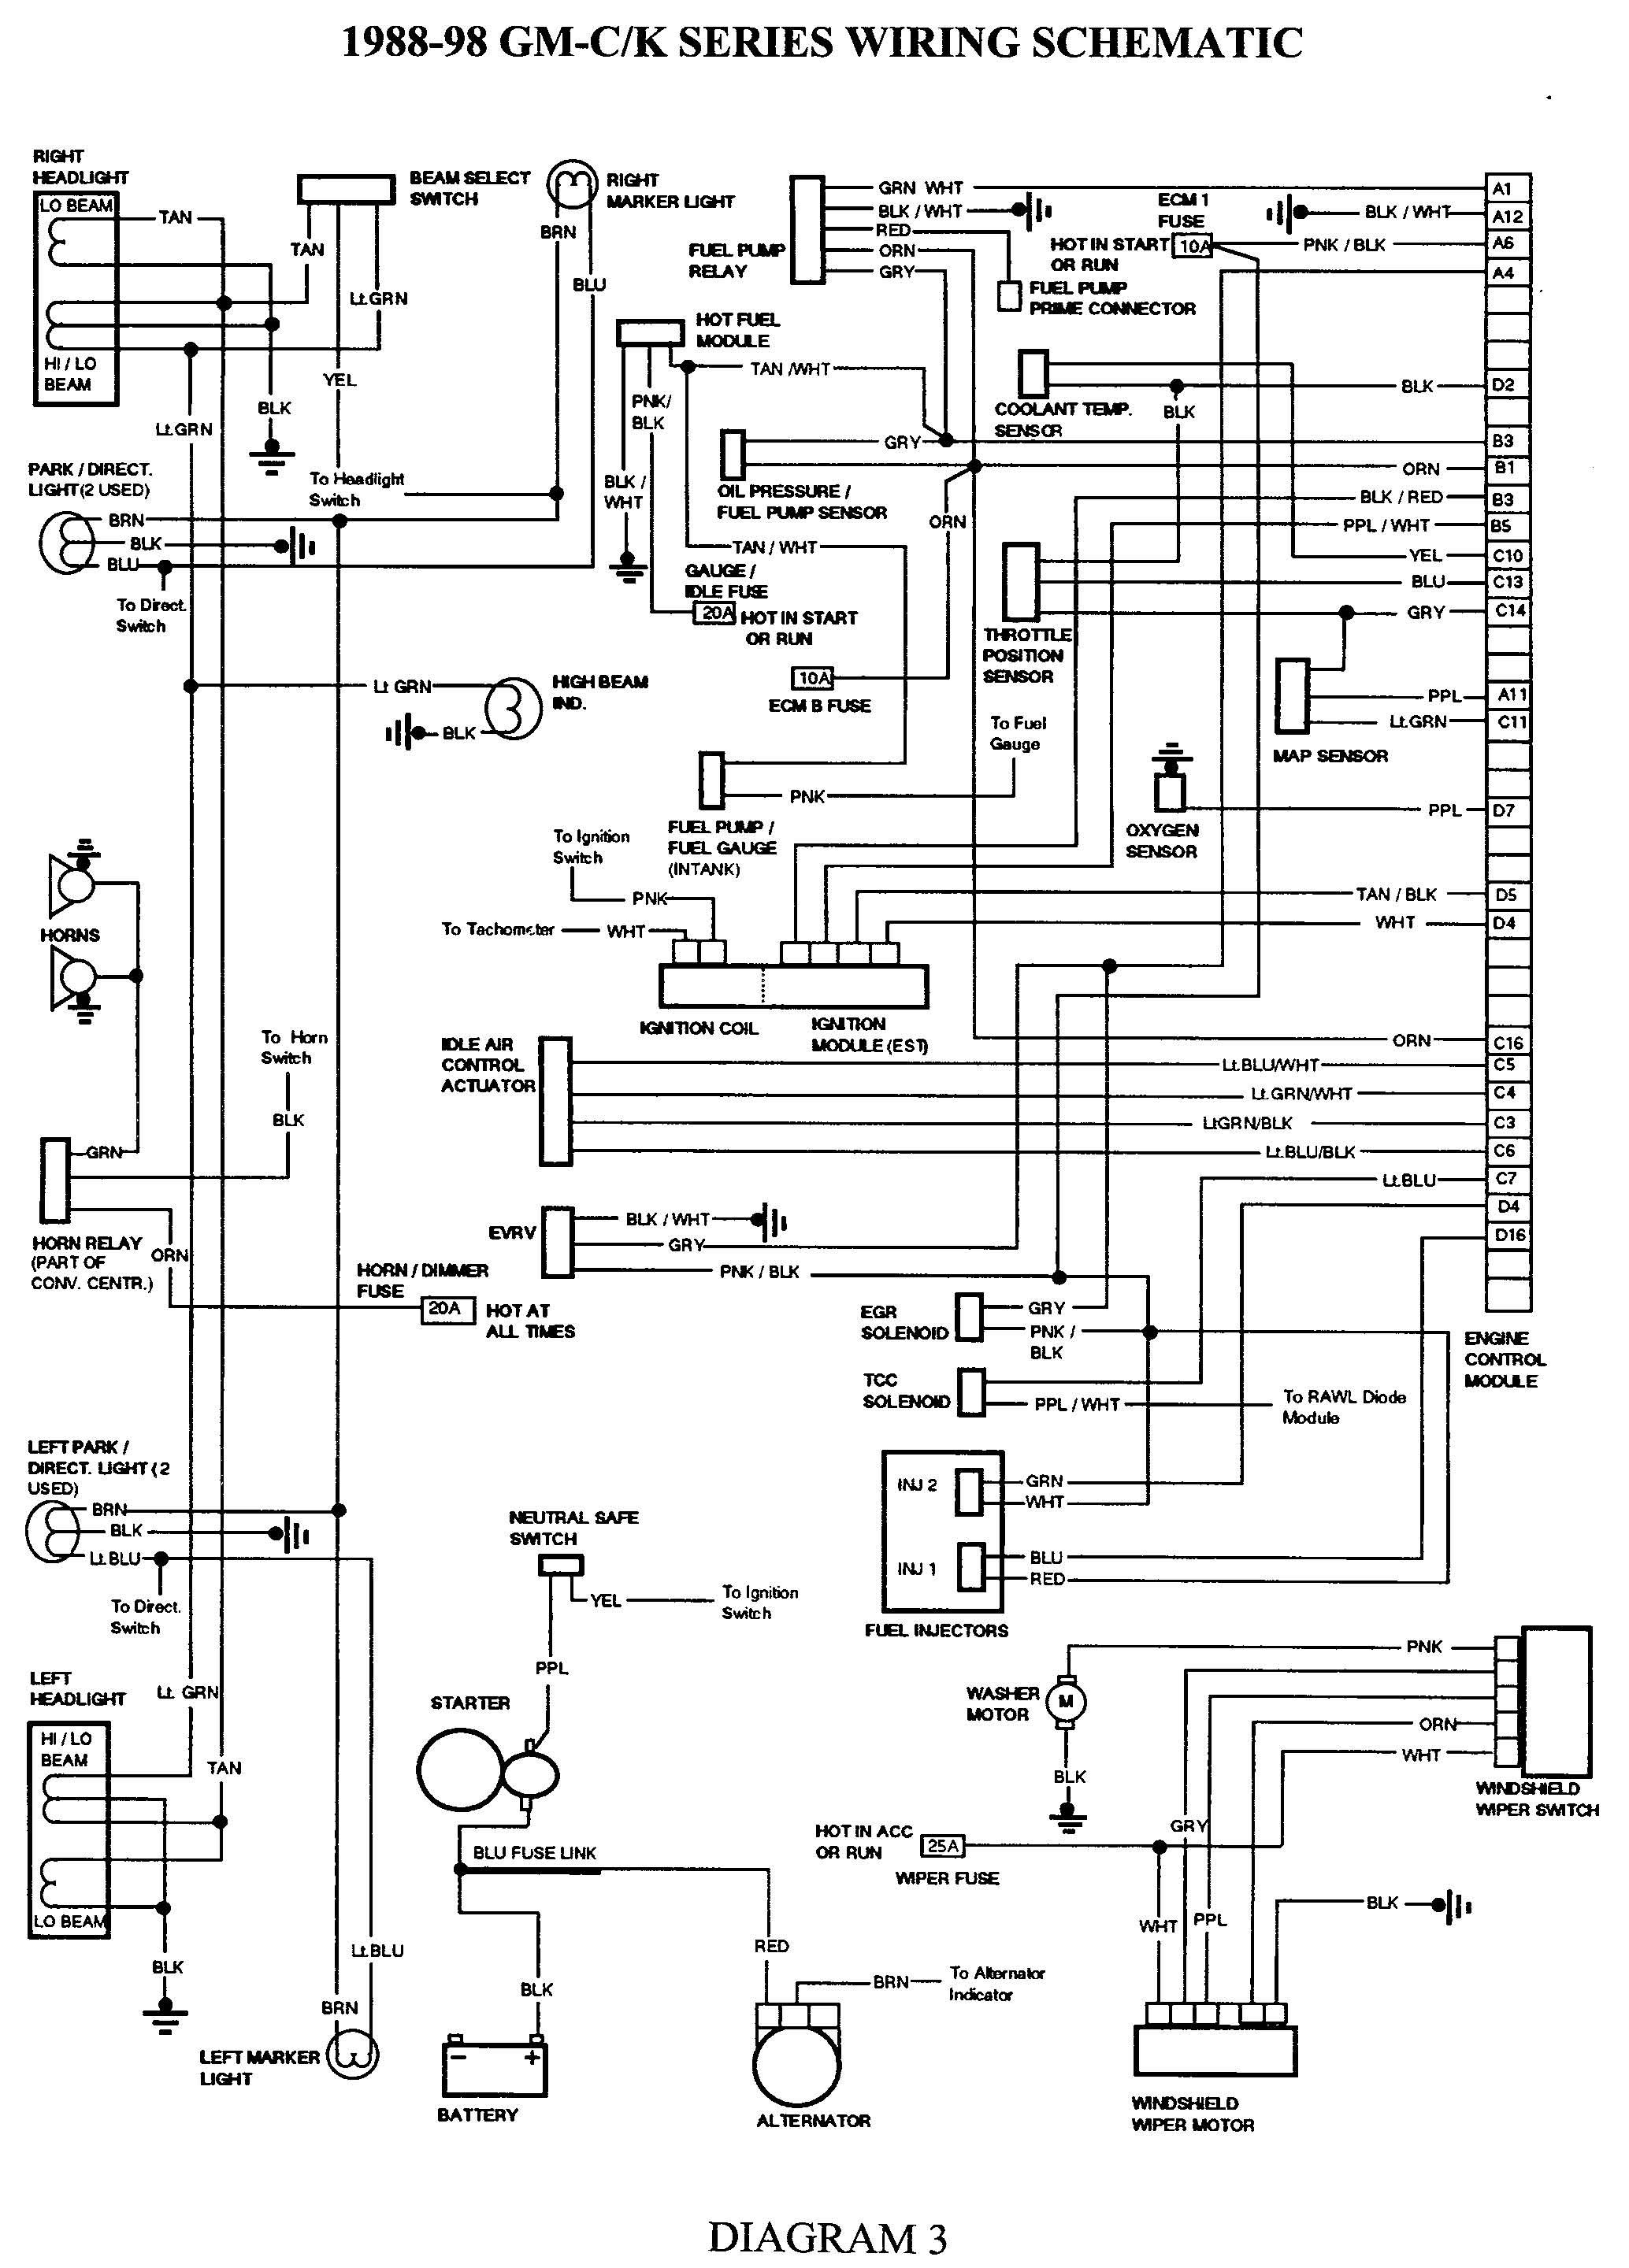 1984 Gmc Wiring Diagram | Wiring Schematic Diagram  Gmc Truck Wiring Diagram on gmc truck electrical wiring diagrams, 1984 chevy ac electric diagrams, gmc truck fuse diagrams, 1984 gmc heater wiring diagram, 2010 gmc light diagrams, 1984 gmc wiring diagram light, 2001 gmc sierra wiring diagrams,